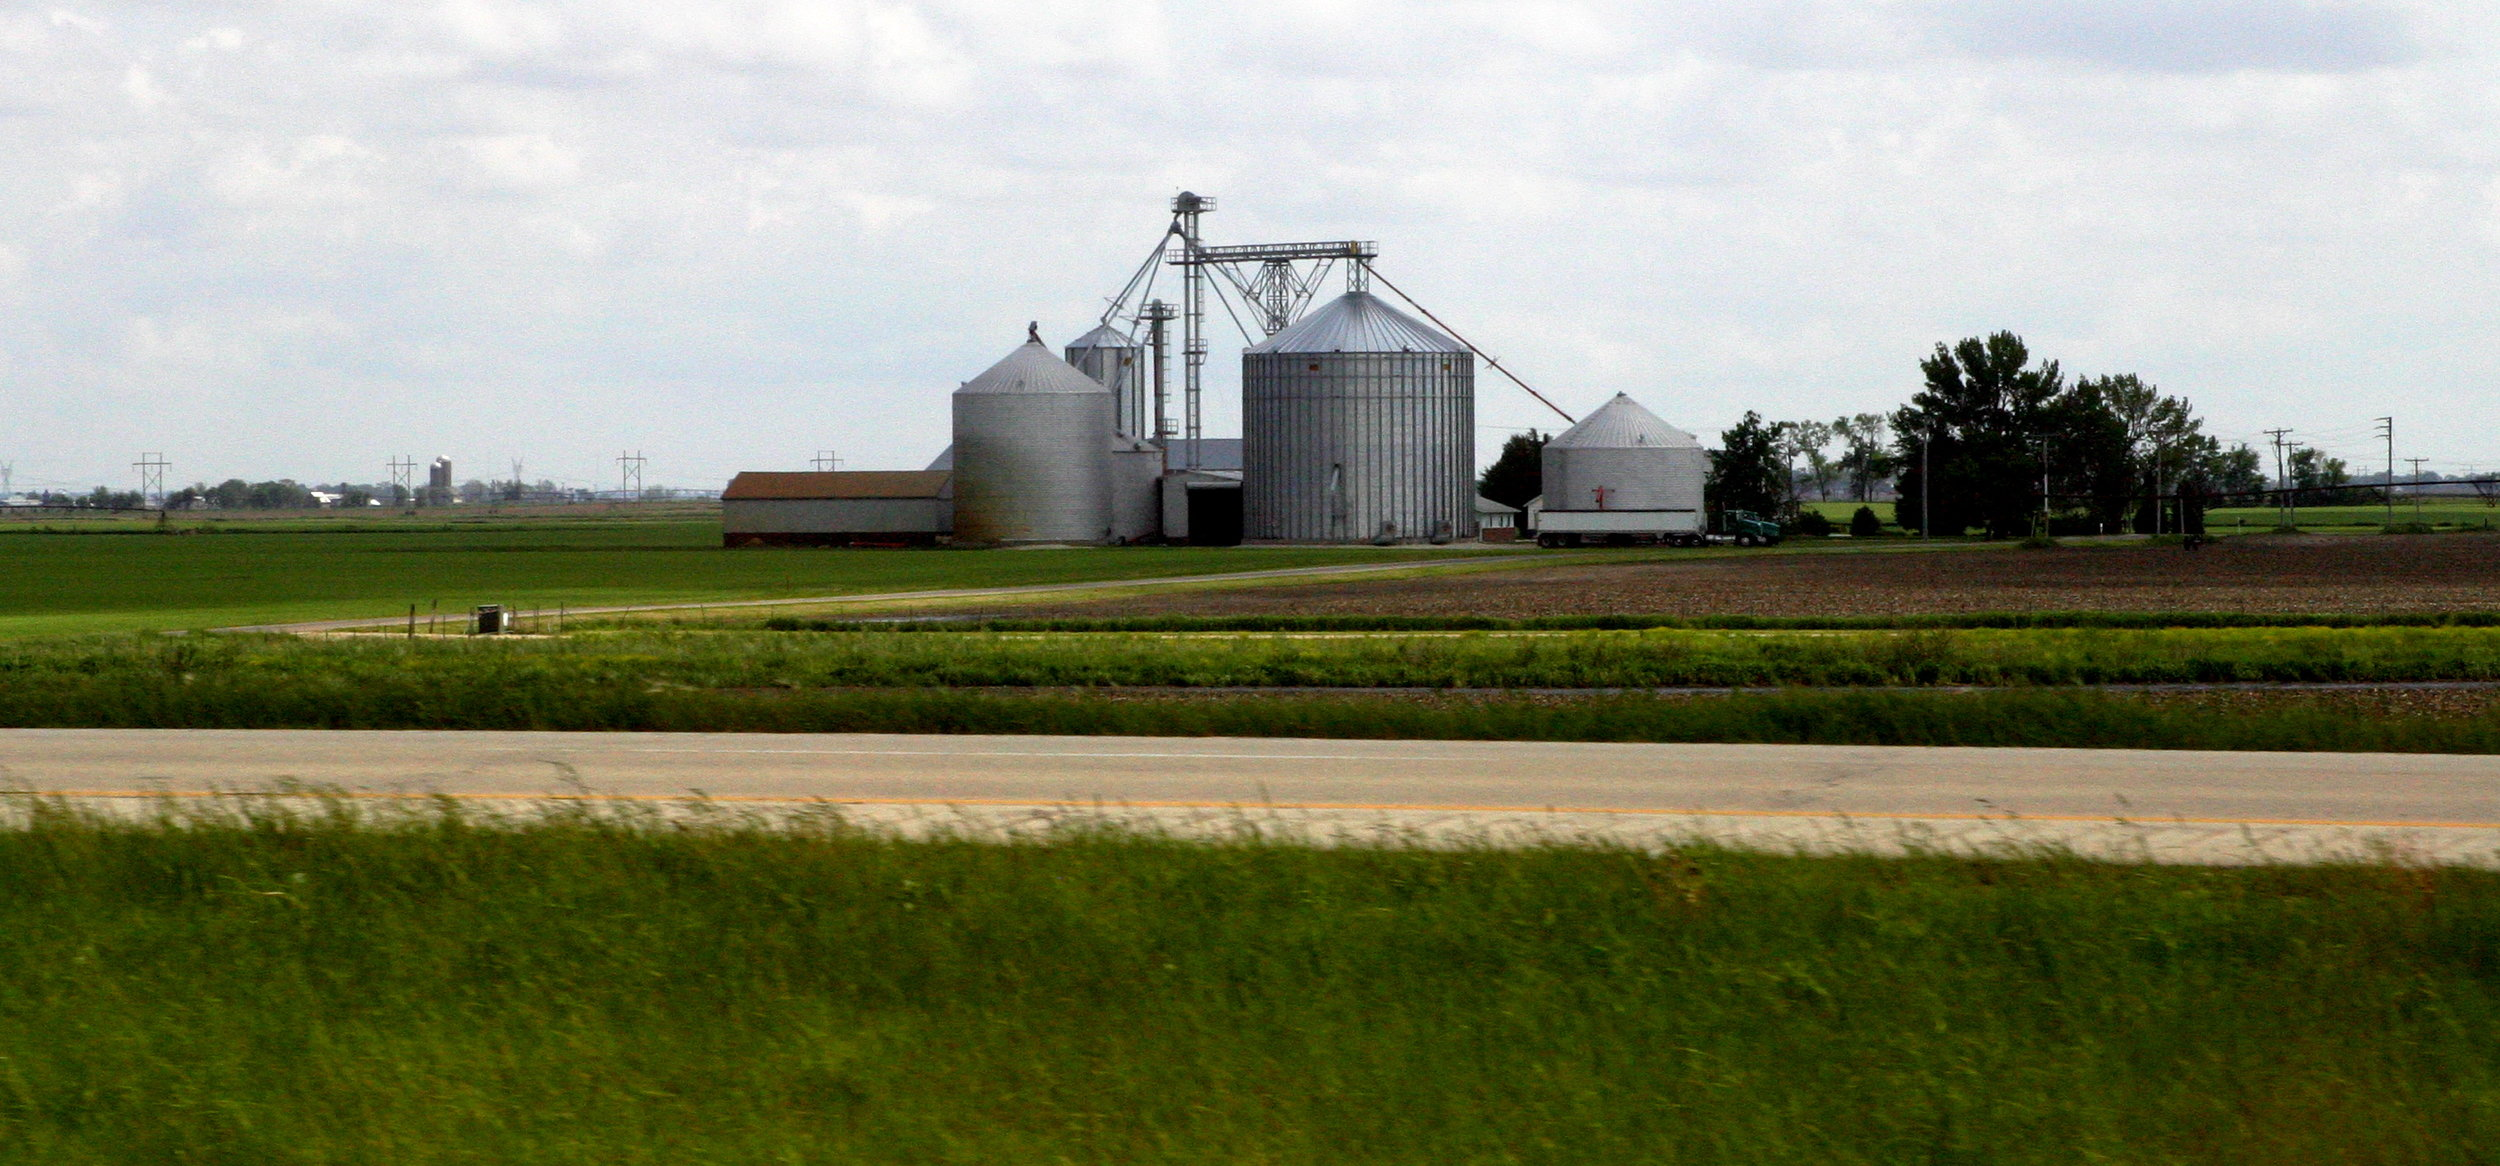 Image of farm with granaries and barn with tilled farmland in foreground.  Image by Camron Flanders.